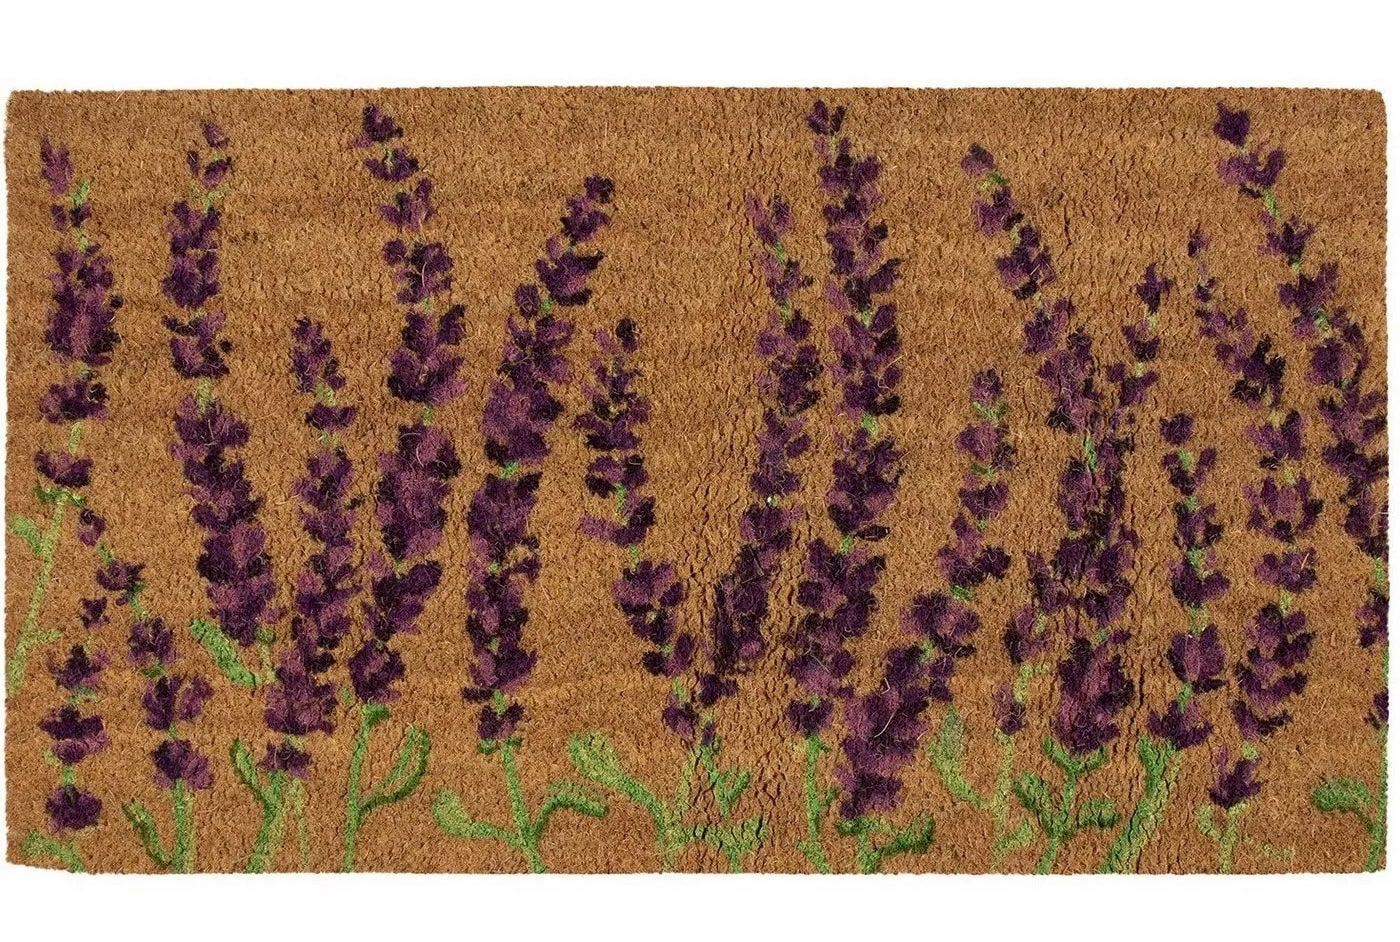 The brown doormat with a lavender flower design